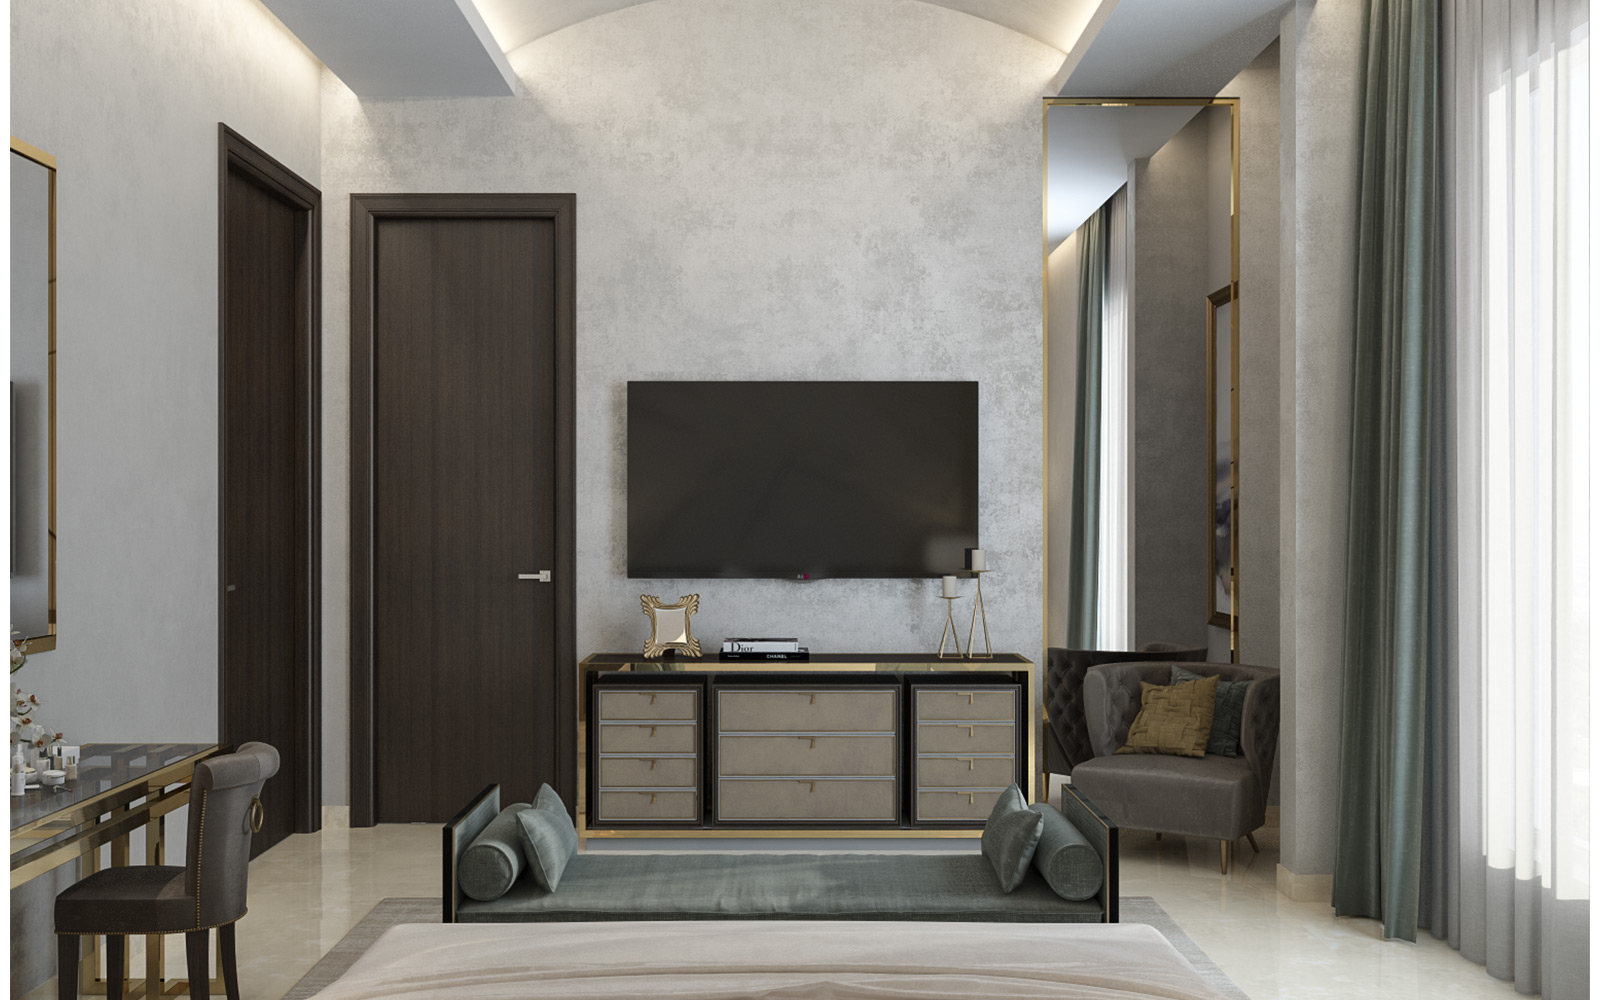 Vogue Design - Jeddah Villa5